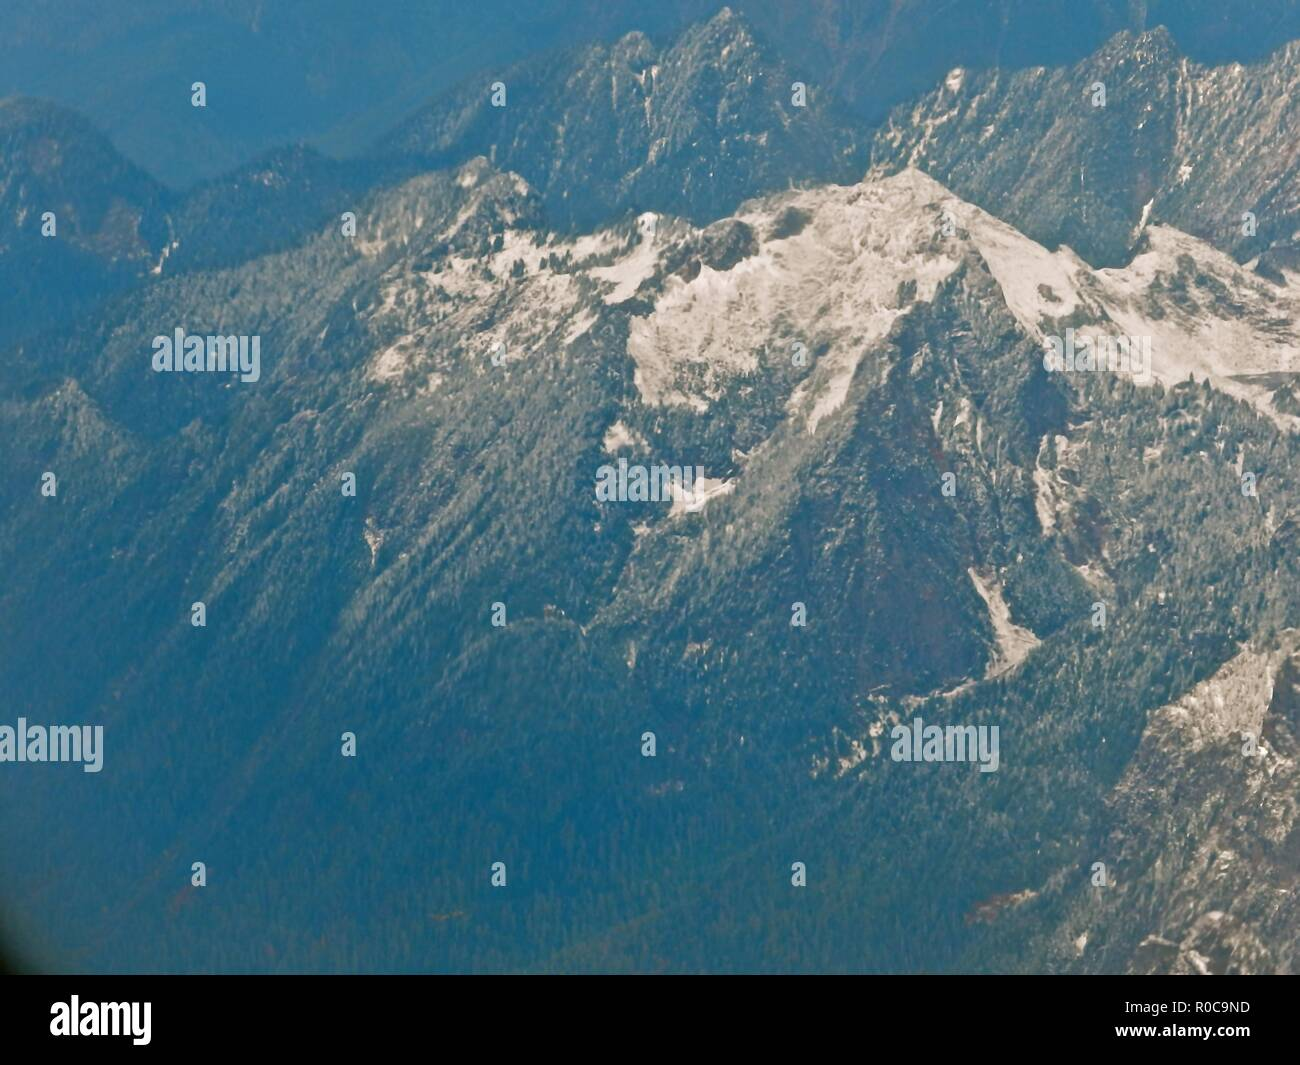 Airplane view of the North Cascade Mountain range, also known as the Pacific Ring of Fire, due to the many volcanoes located there. - Stock Image